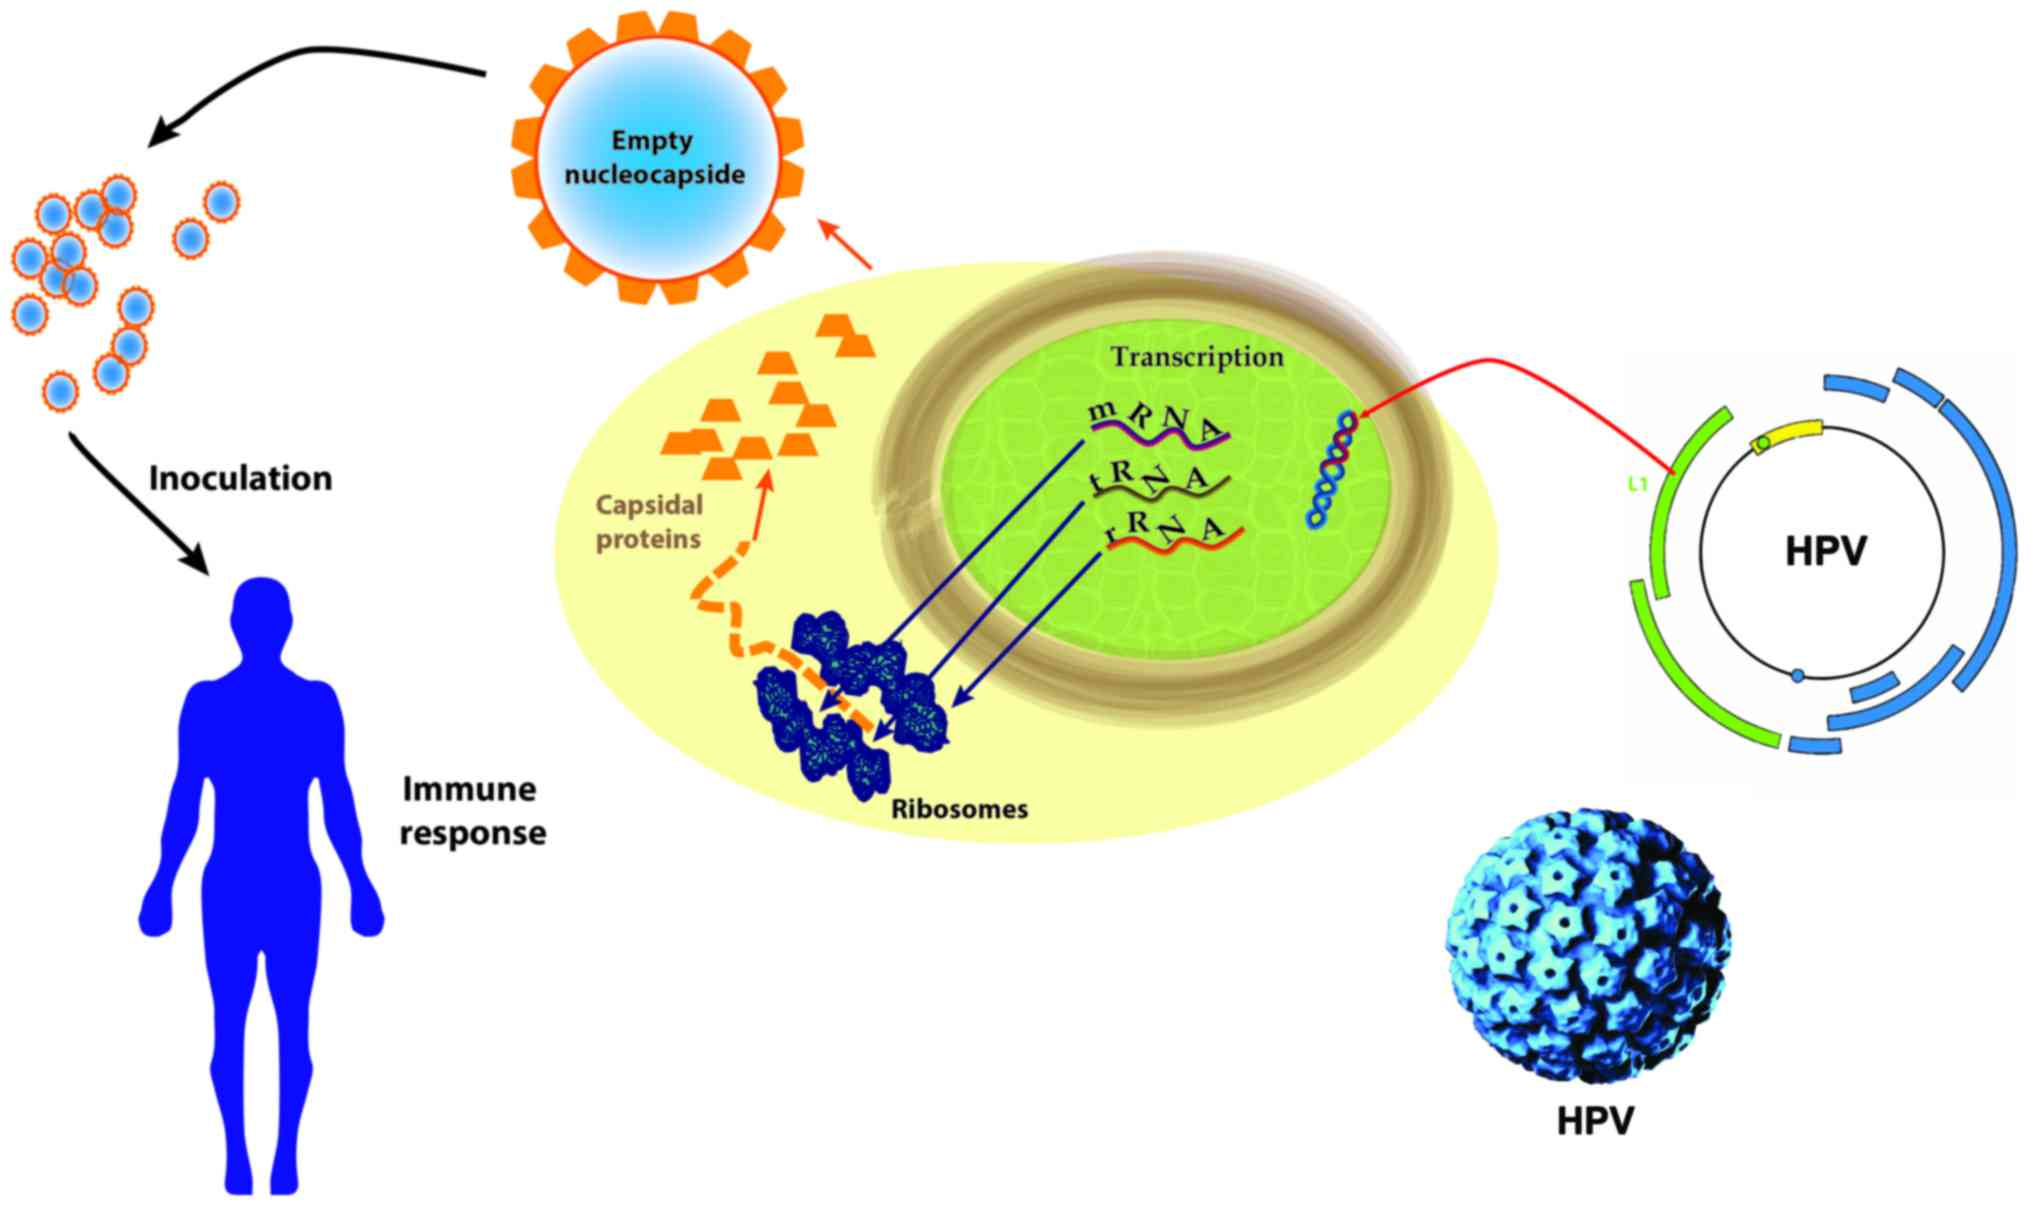 human papillomavirus (hpv) has been implicated in the pathogenesis of carcinoma of the